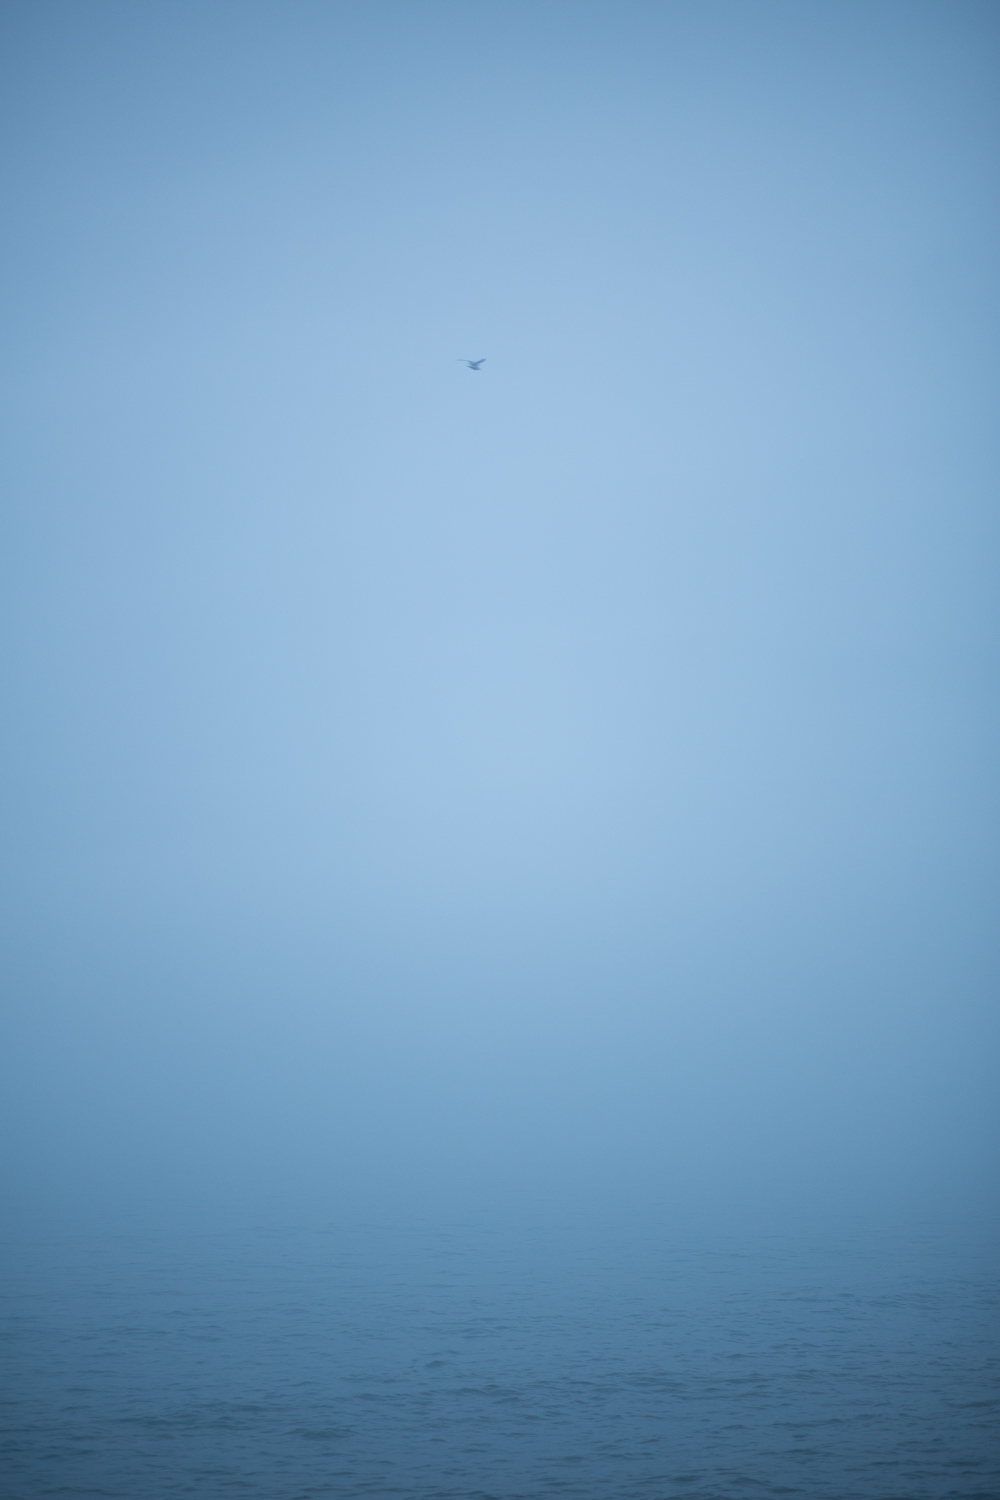 A seagull soars out into the mist.